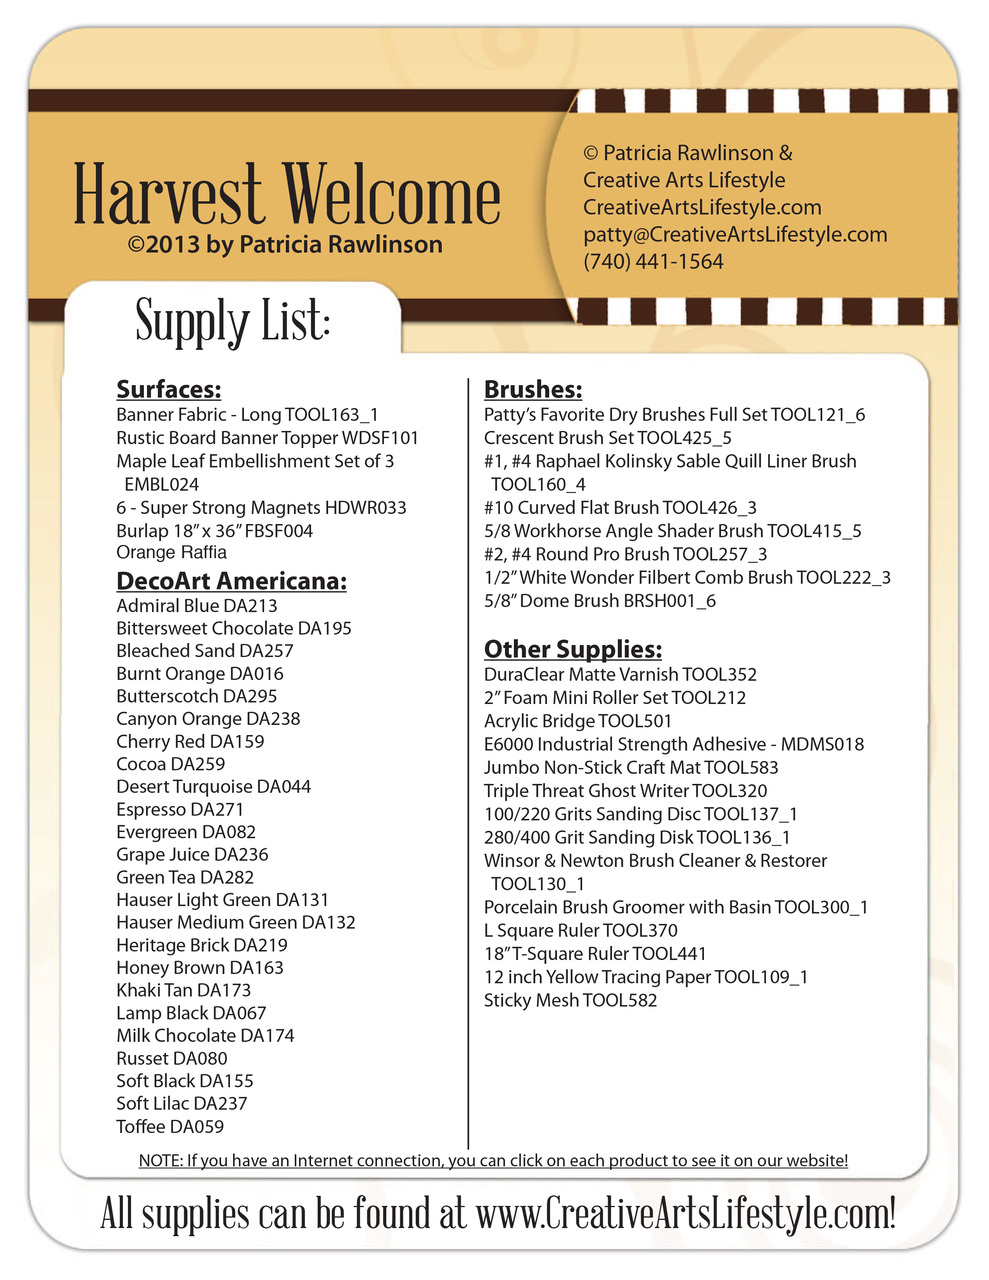 Harvest Welcome E-Packet - Patricia Rawlinson